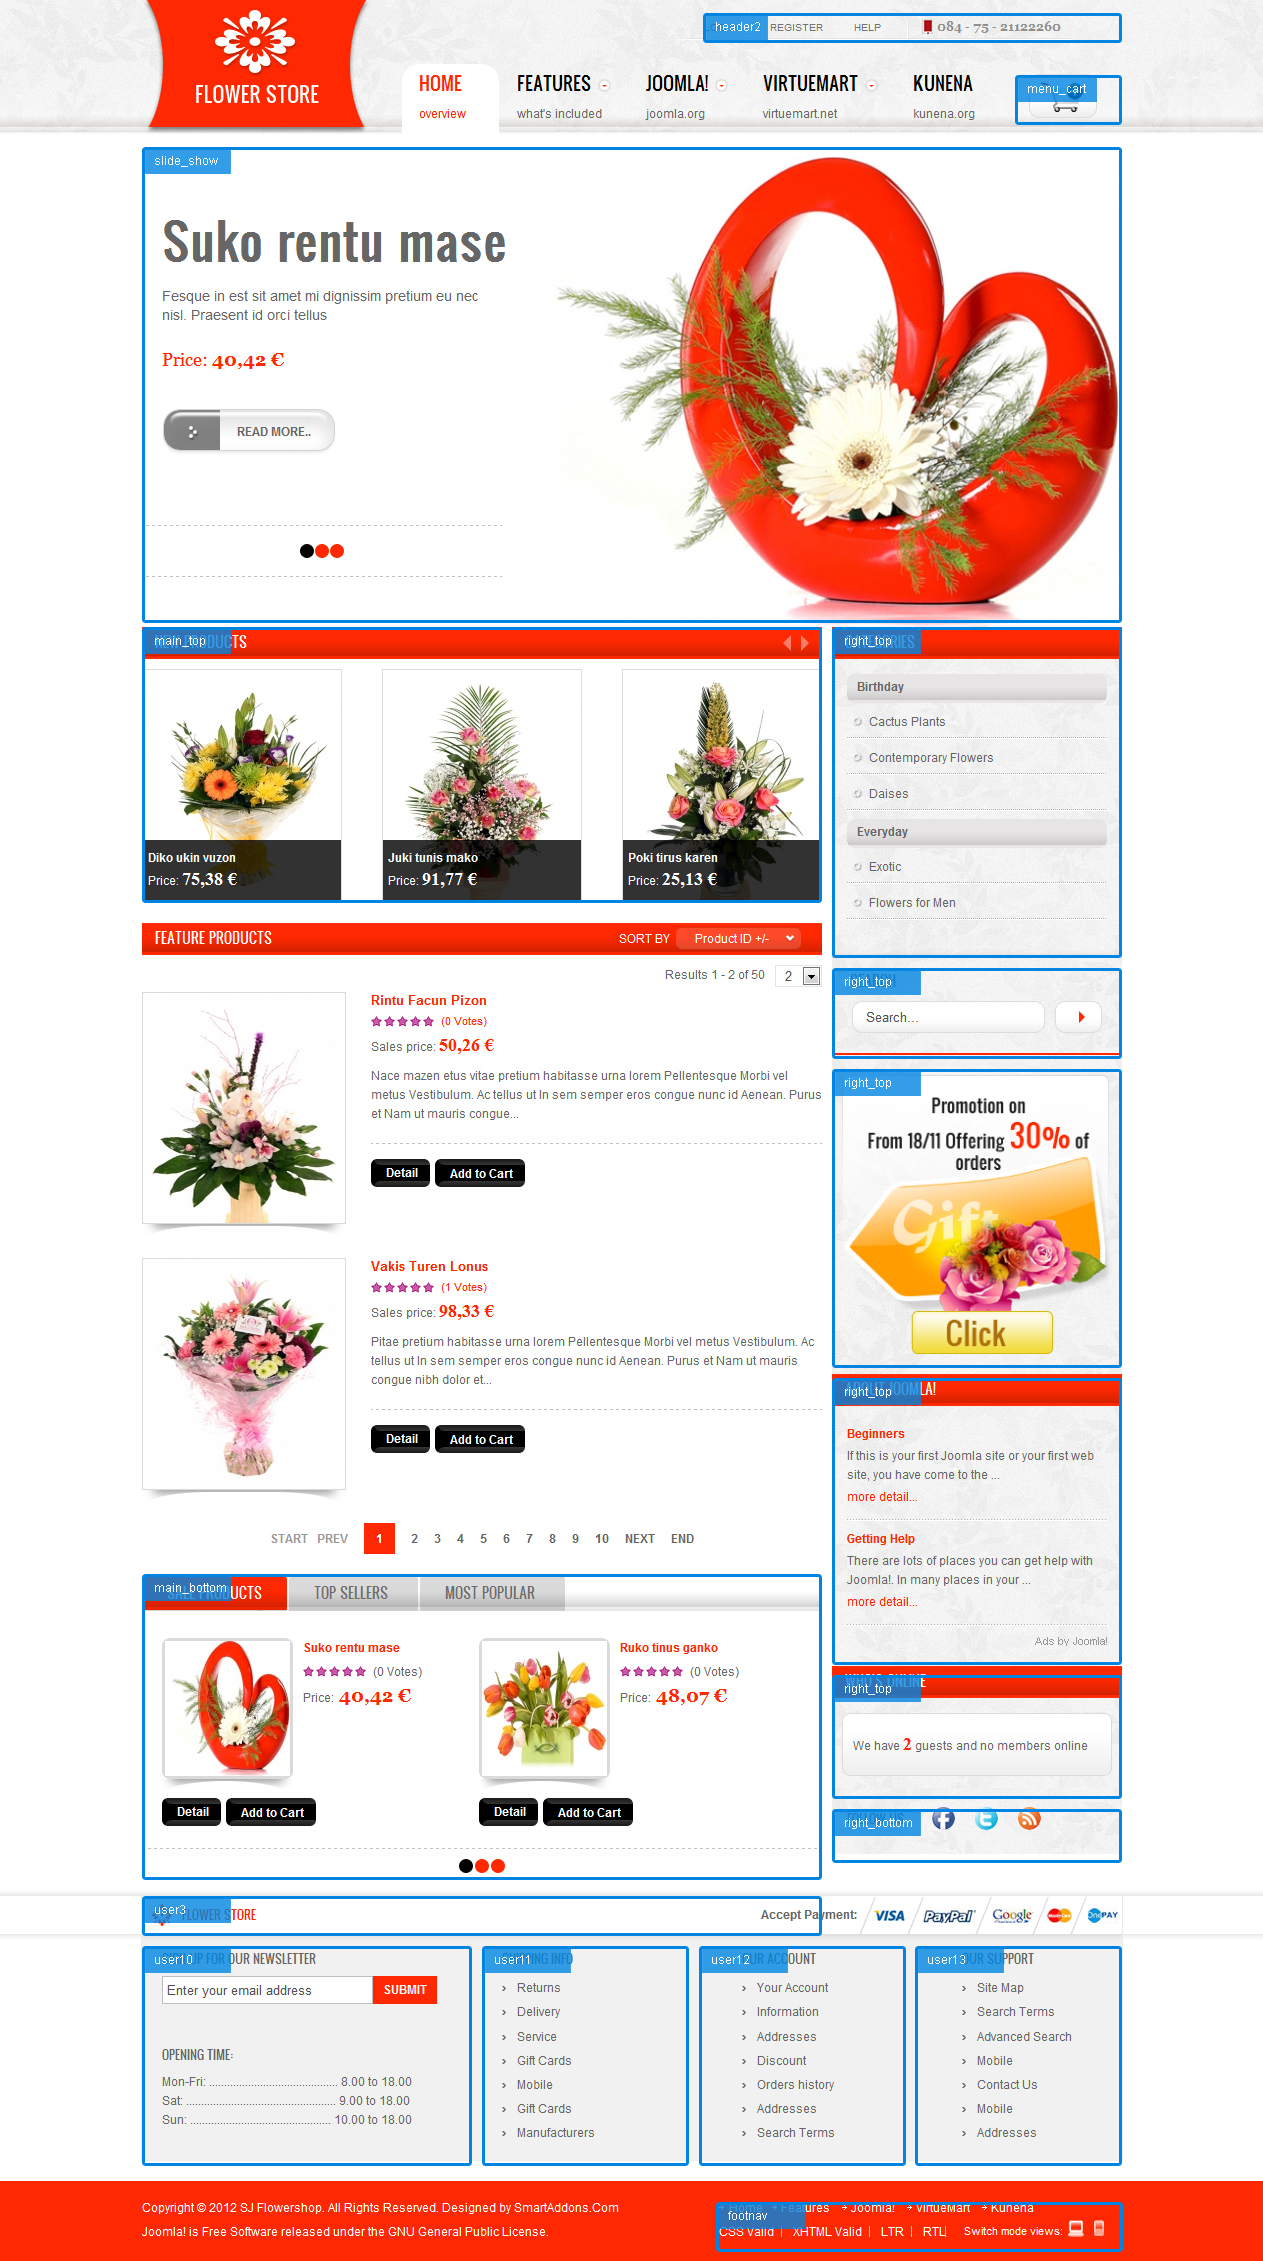 Joomla Template for Flower Store - SJ Flower Store